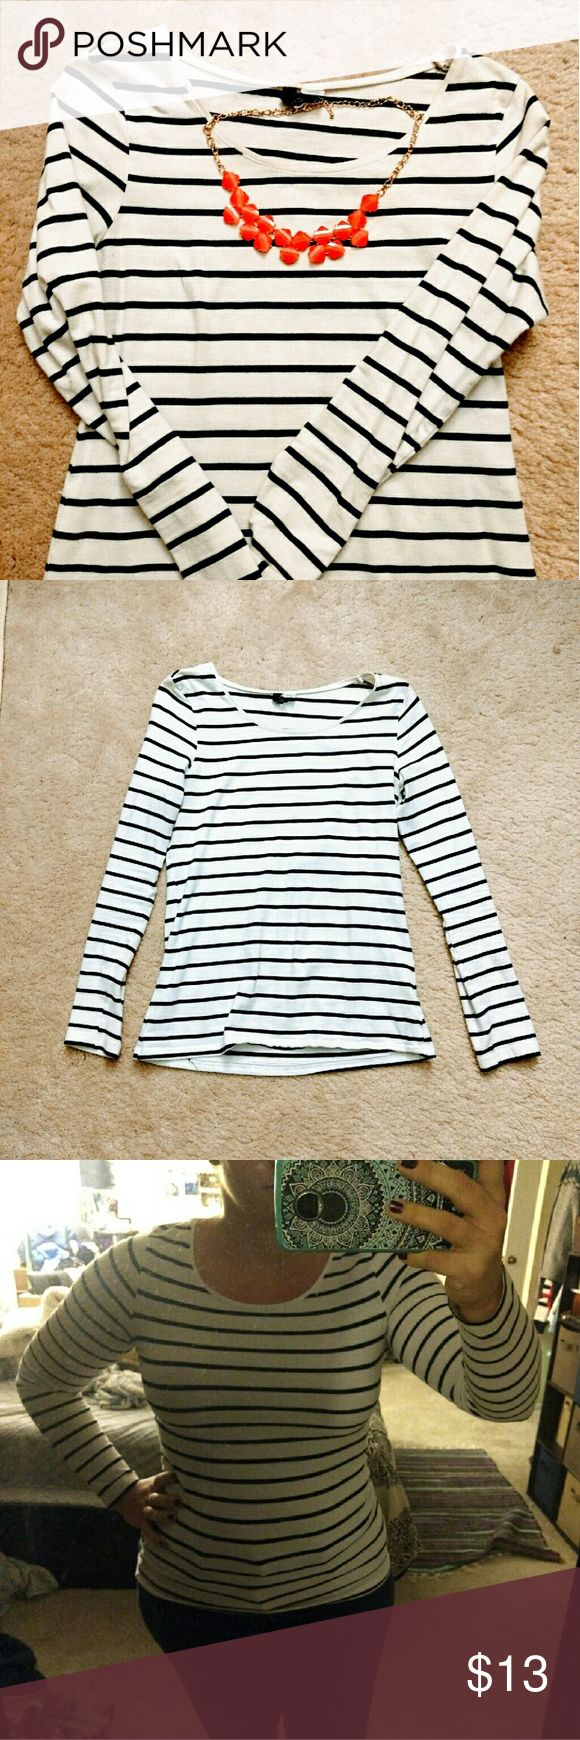 🆕 Black and White Long Sleeve A fitted black and white long sleeve shirt, only worn 2/3 times in good condition only a little piling under the inner arm but unnoticed while wearing. H&M Tops Tees - Long Sleeve